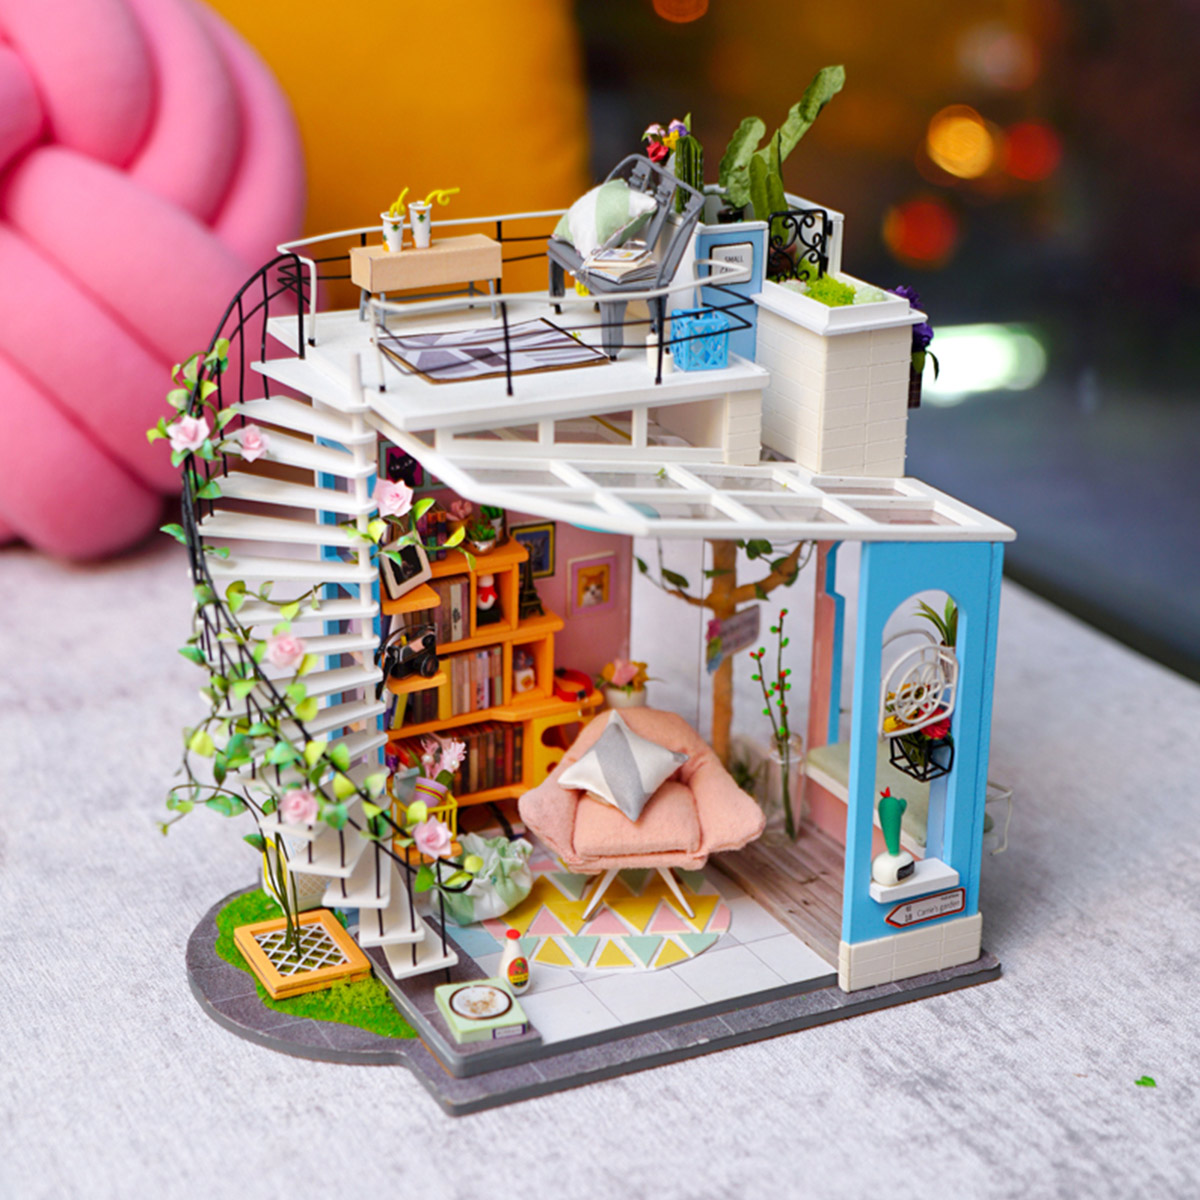 Rolife Miniature DG12 Dora's Loft as a beautiful home decor